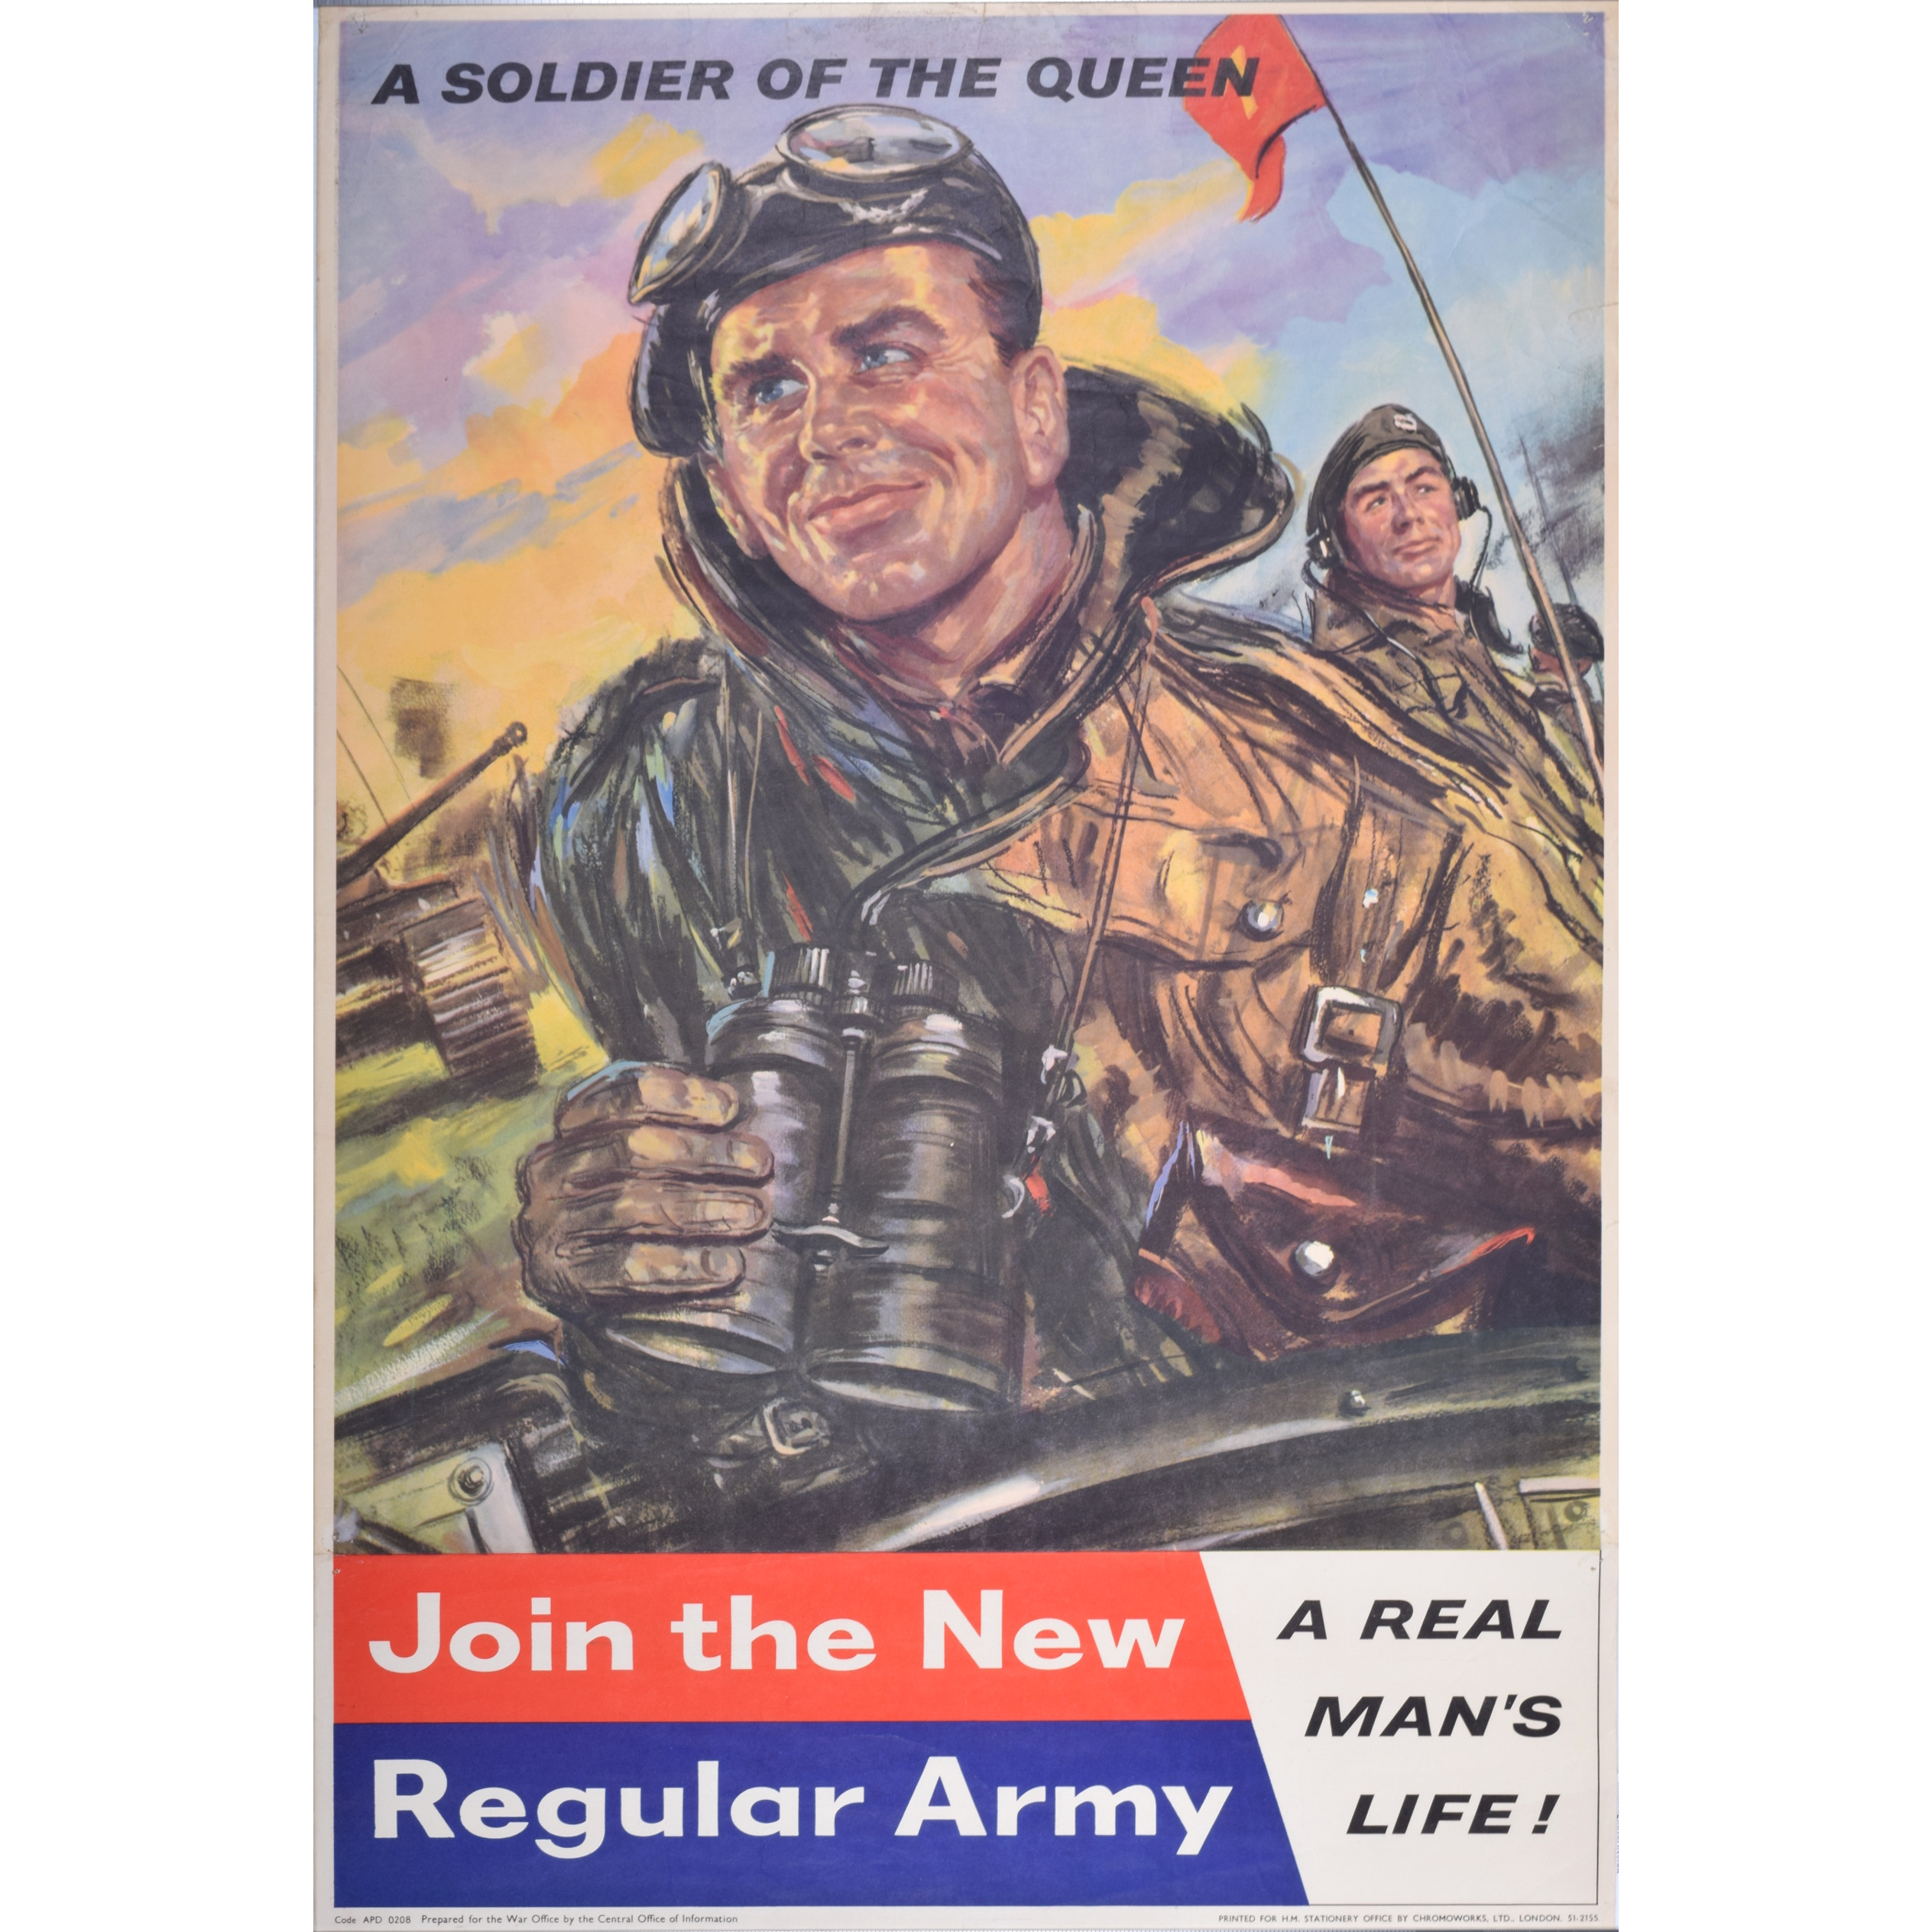 Join the New Regular Army Recruitment Poster 1959 Soldier of the Queen